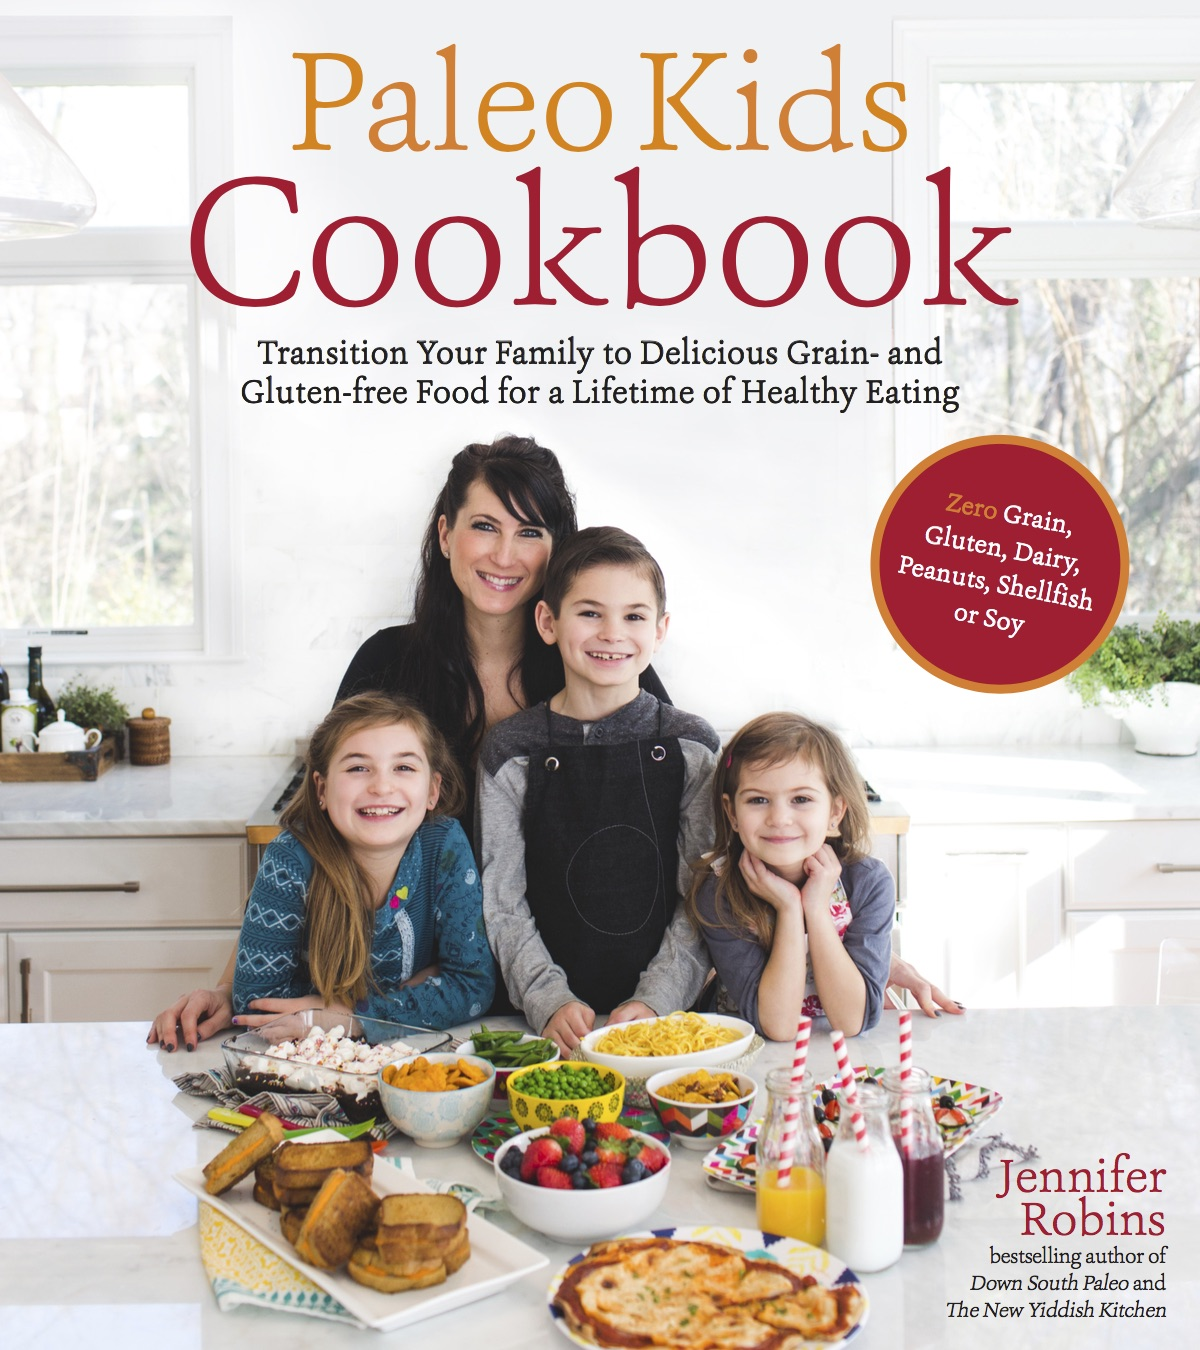 Paleo Kids Cookbook